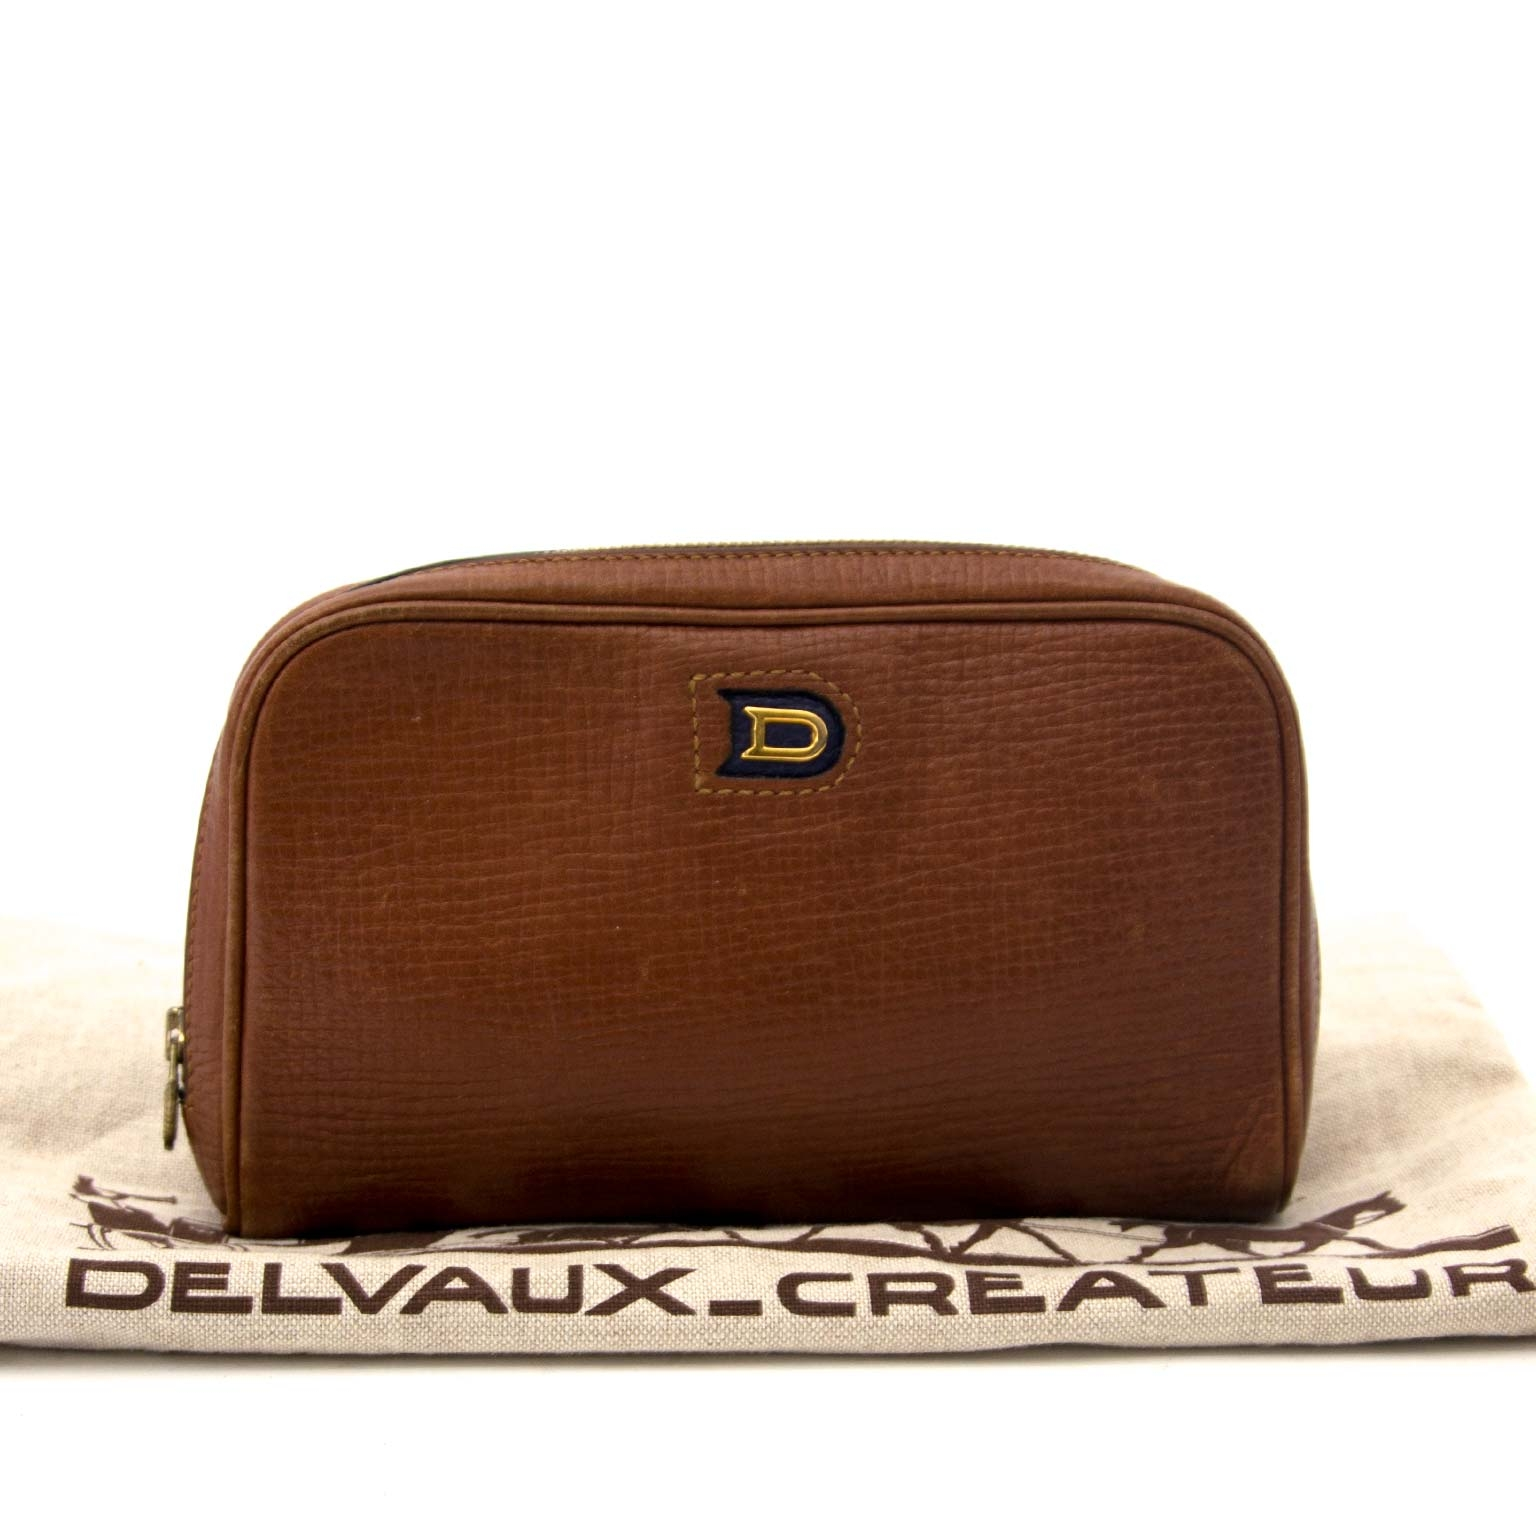 Delvaux Cognac Textured Leather Zip Pochette for sale online